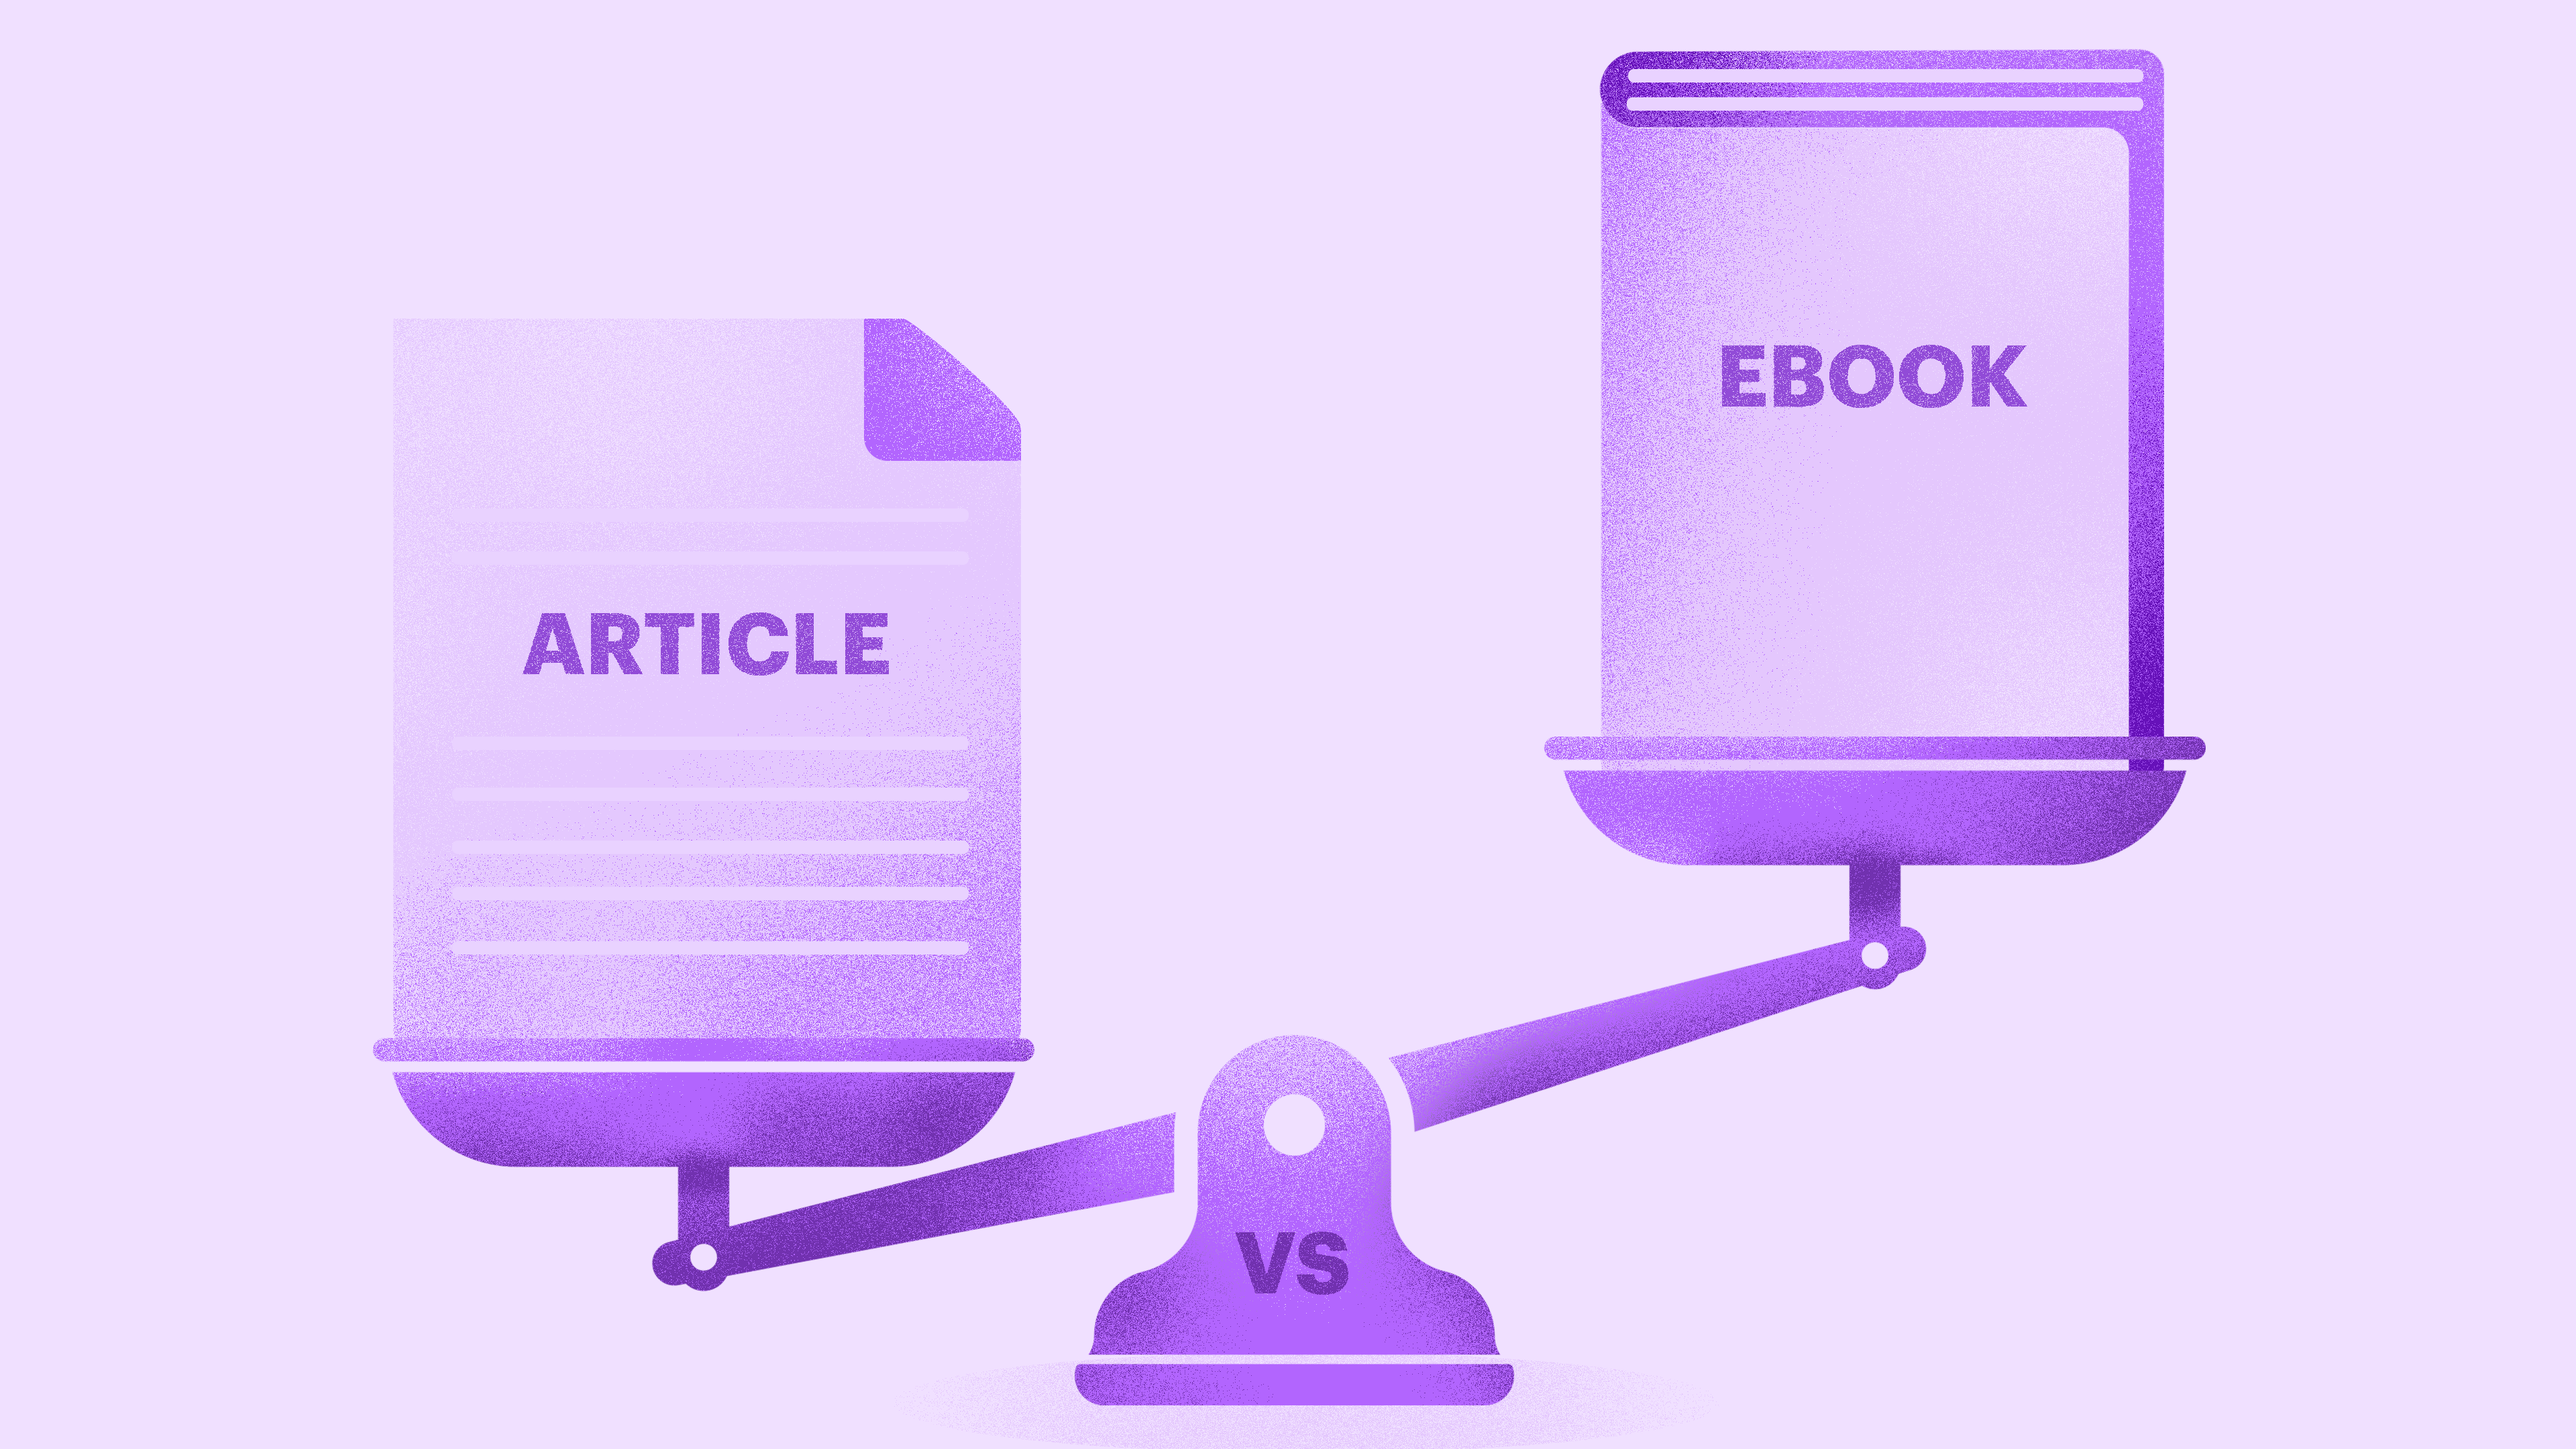 Content Marketing Formats: Articles versus Ebooks